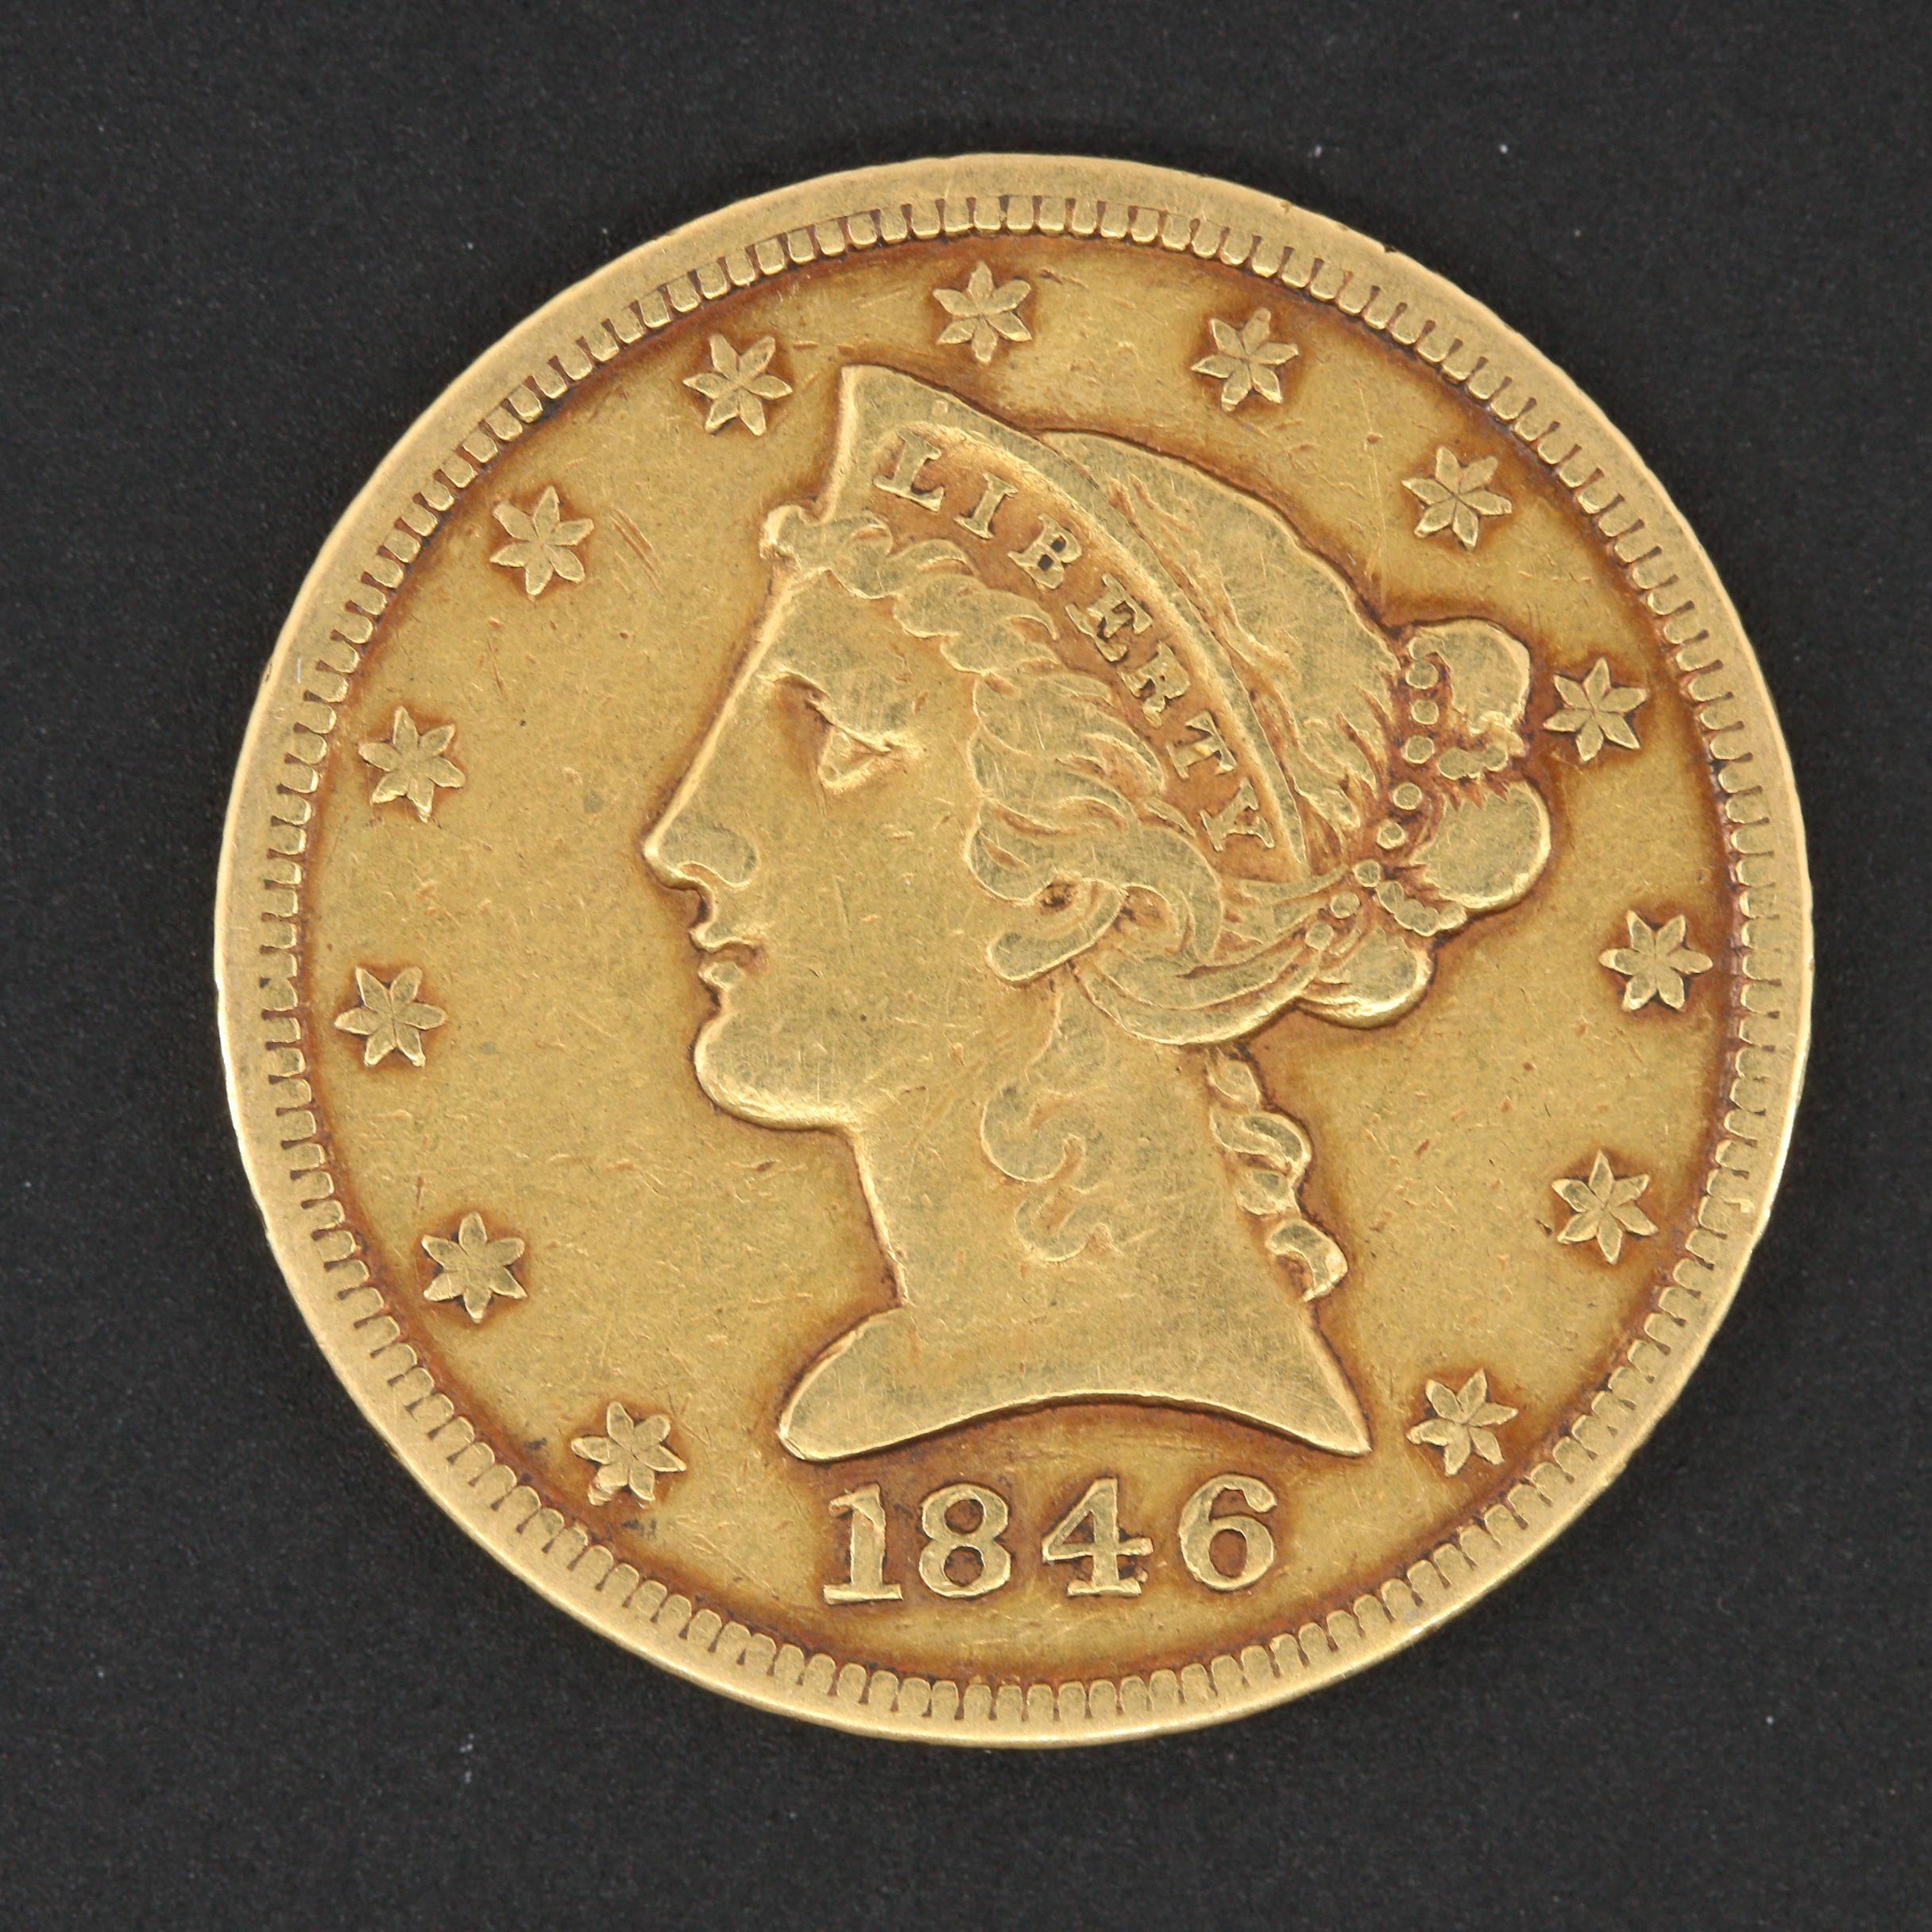 1846 Large Date Variety Liberty Head $5 Gold Coin